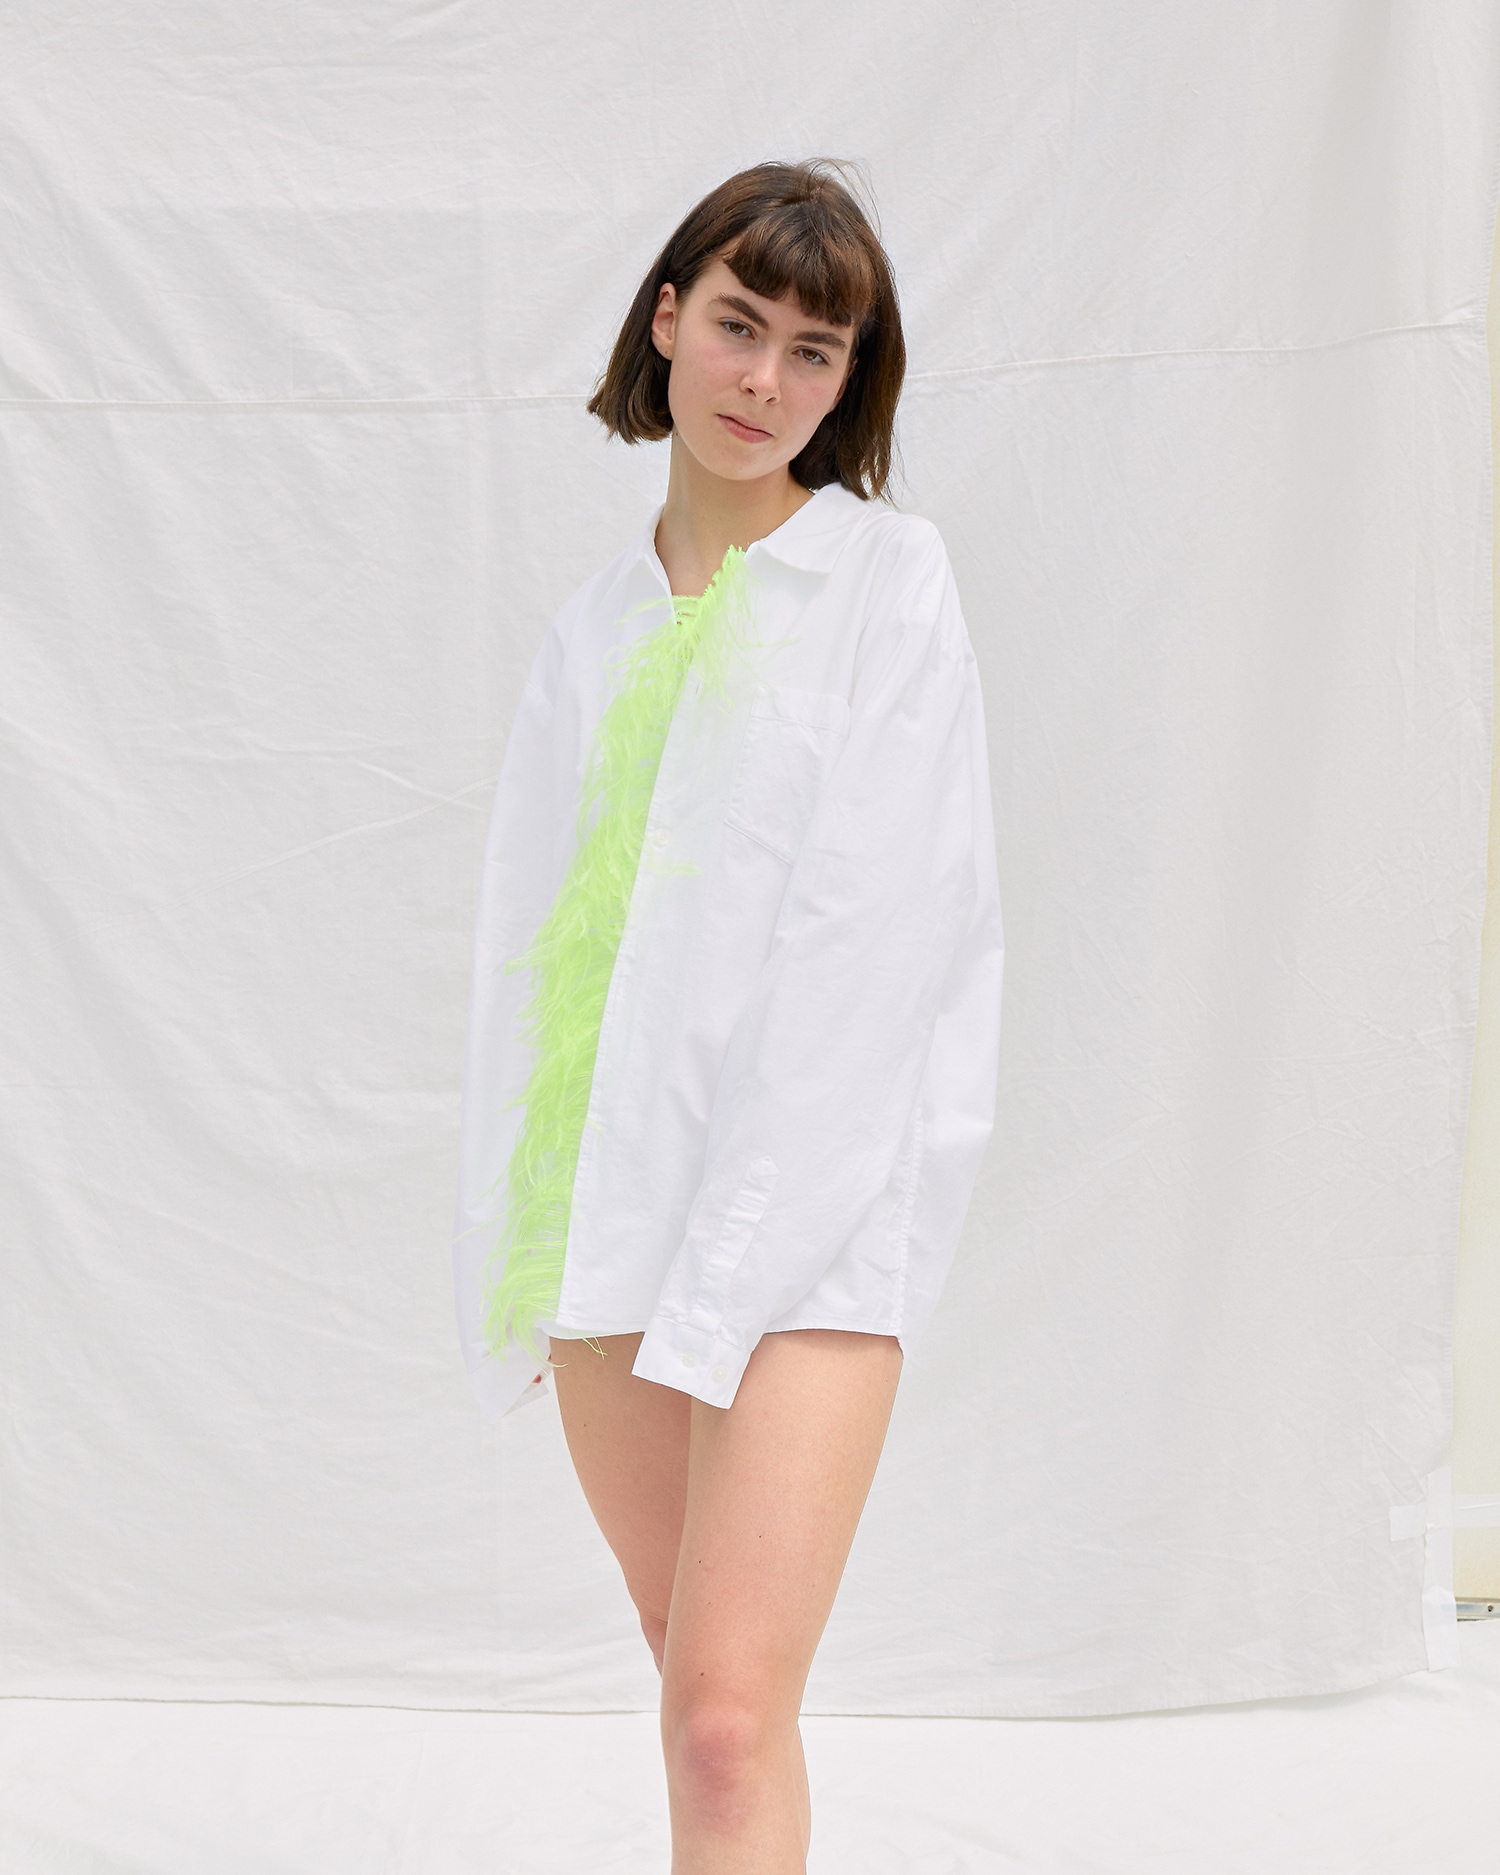 One DNA Dress Shirt with Chartreuse Feathers